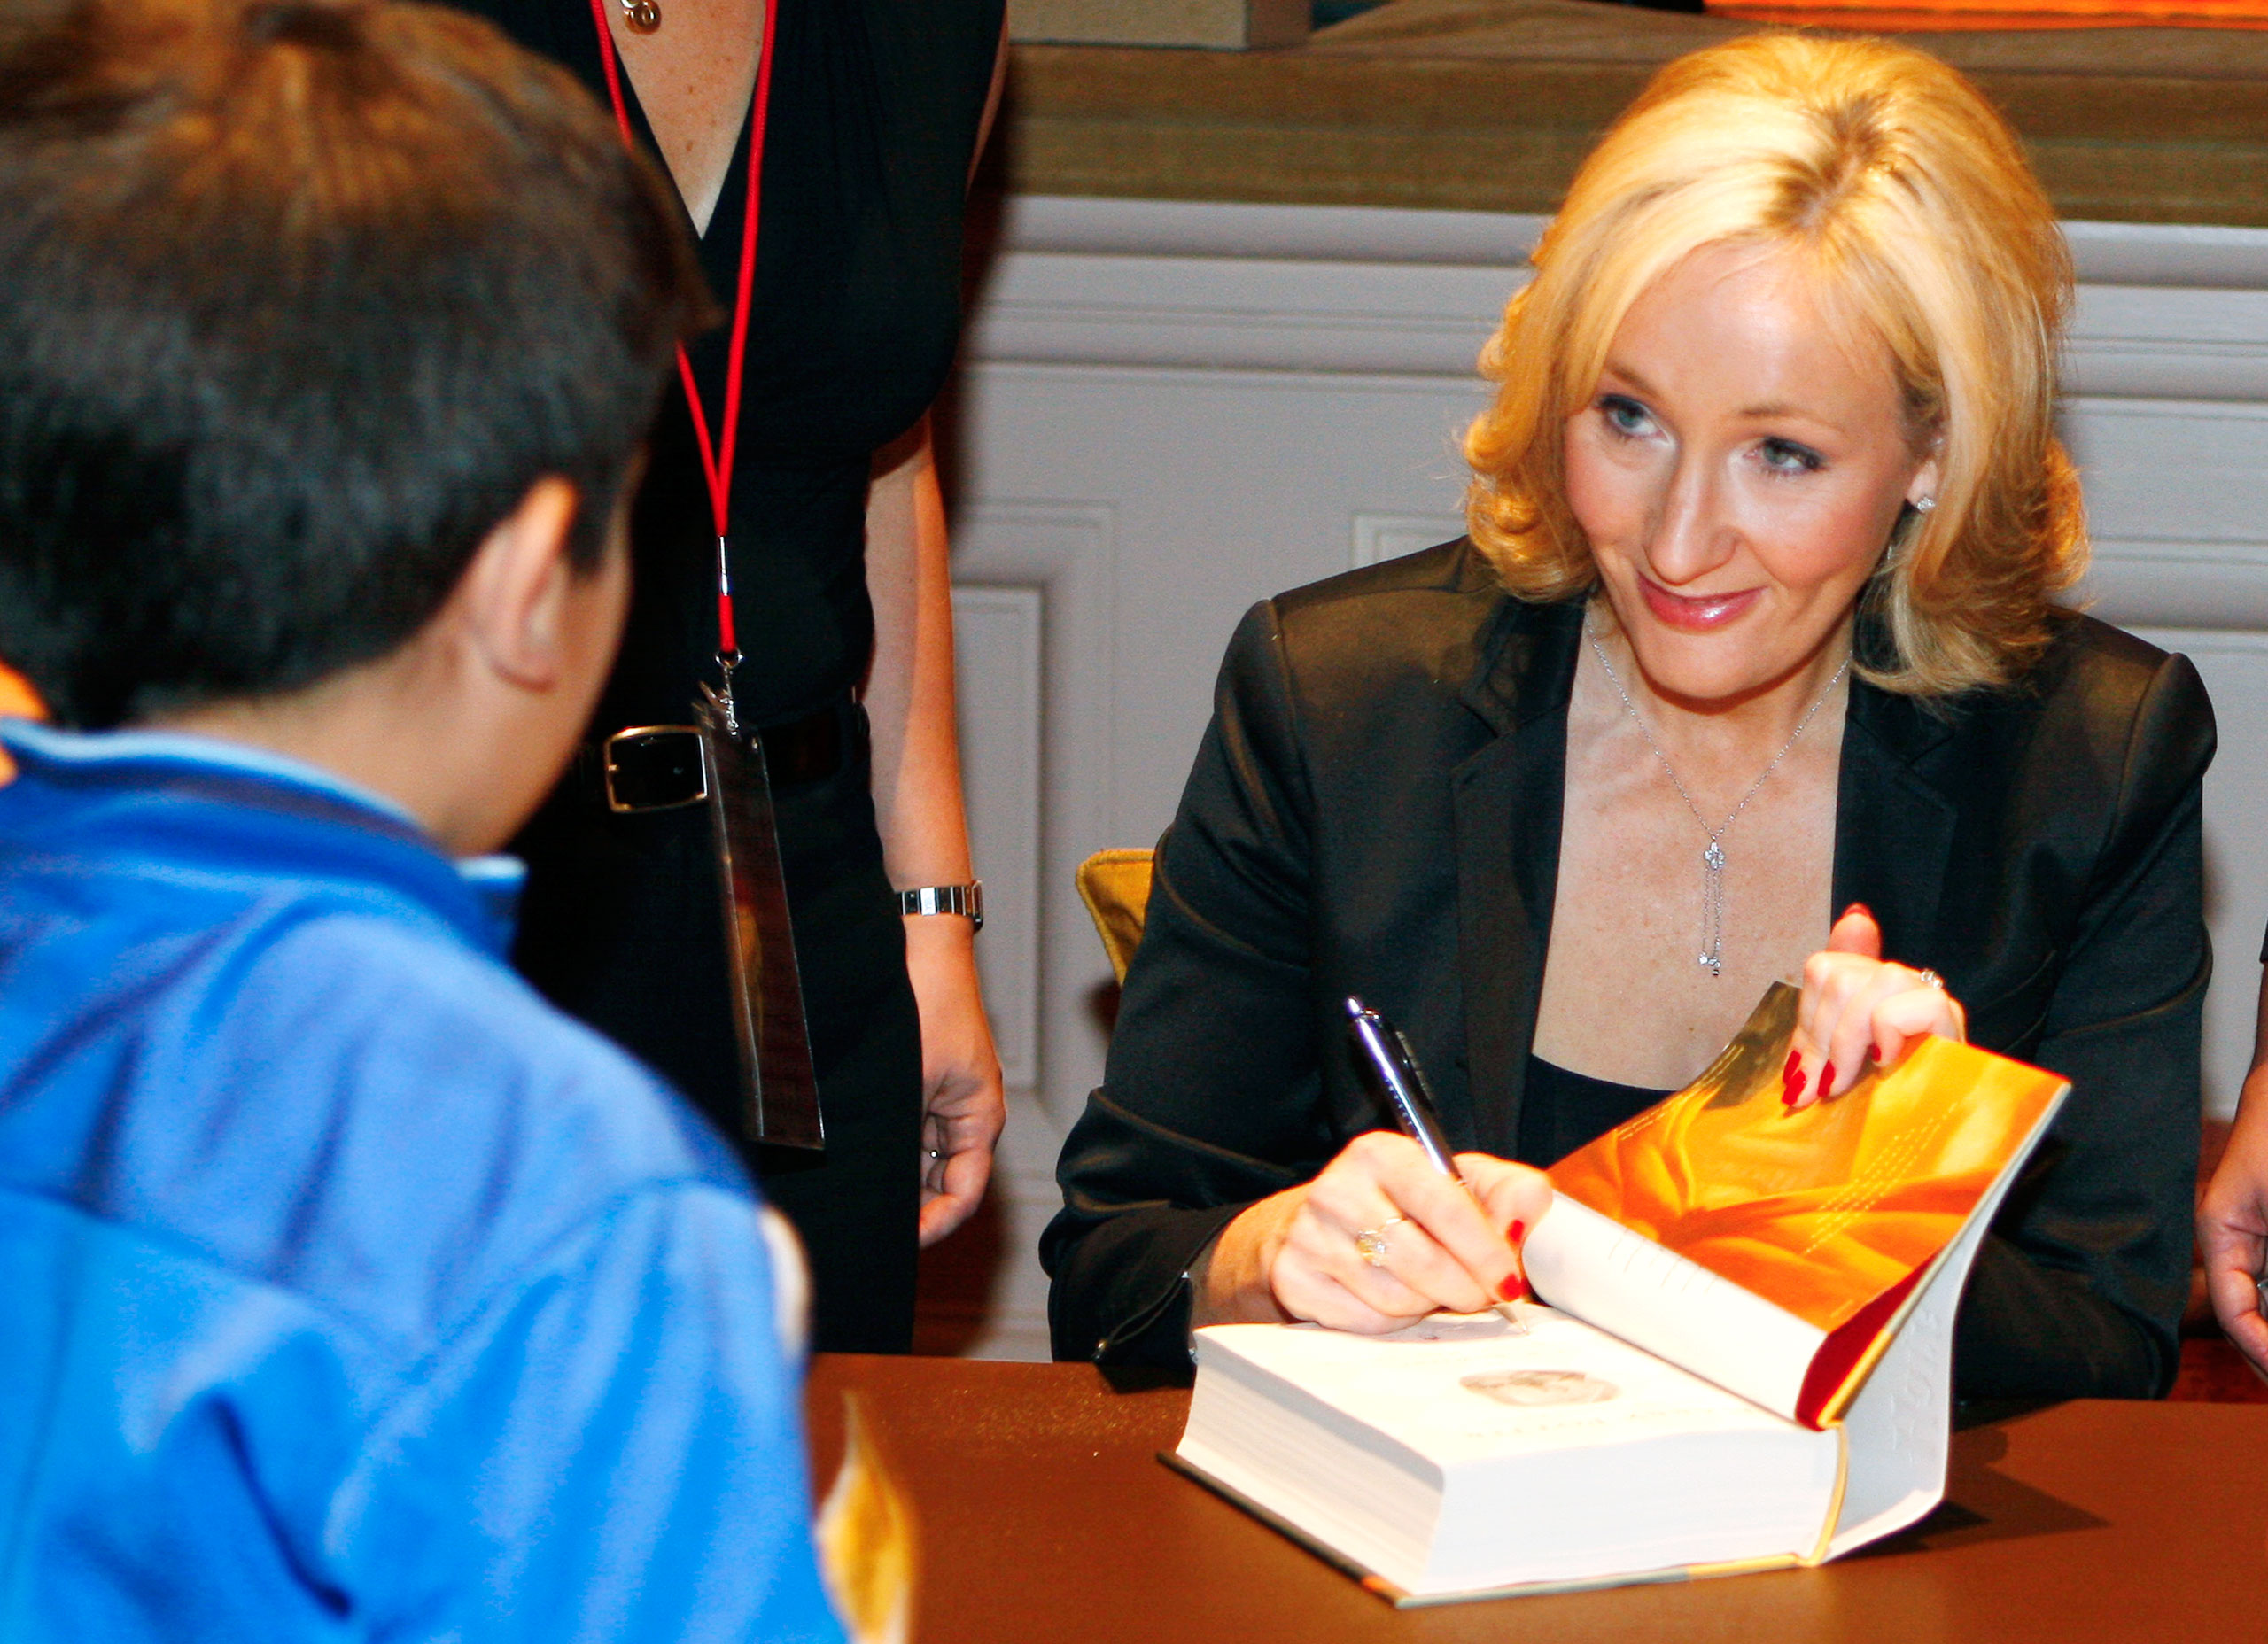 J.K. Rowling Harry Potter Deathly Hallows Book Signing